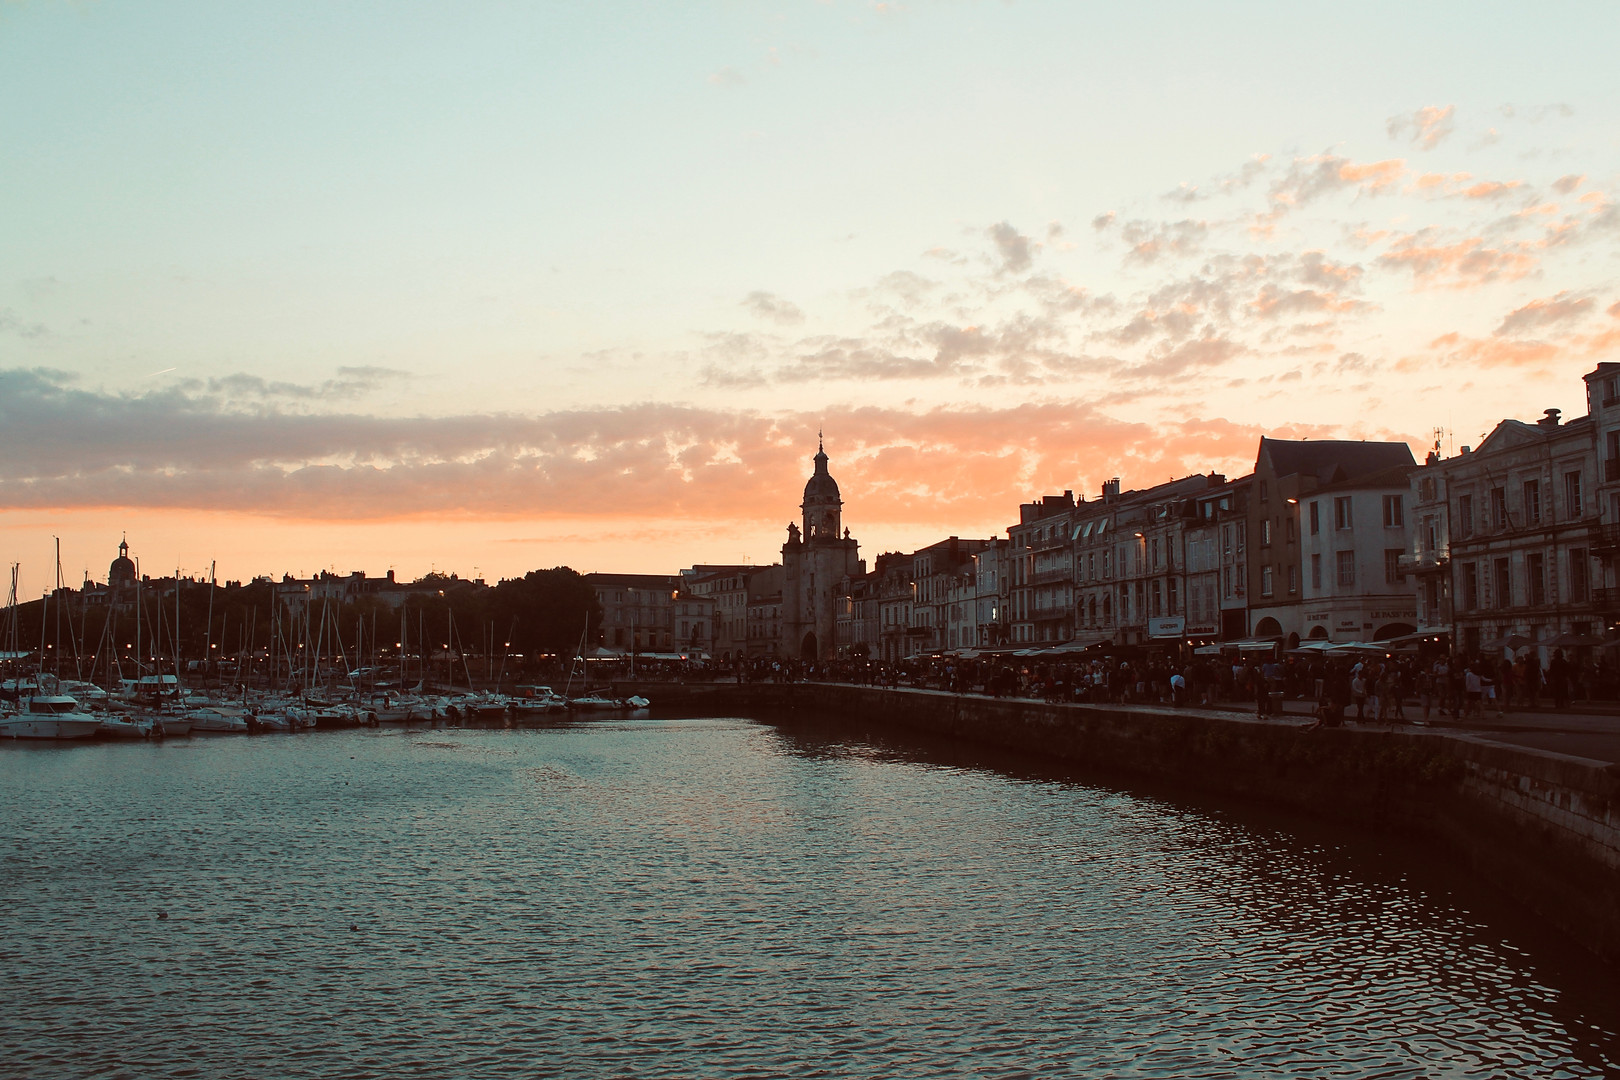 La Rochelle at Sunset